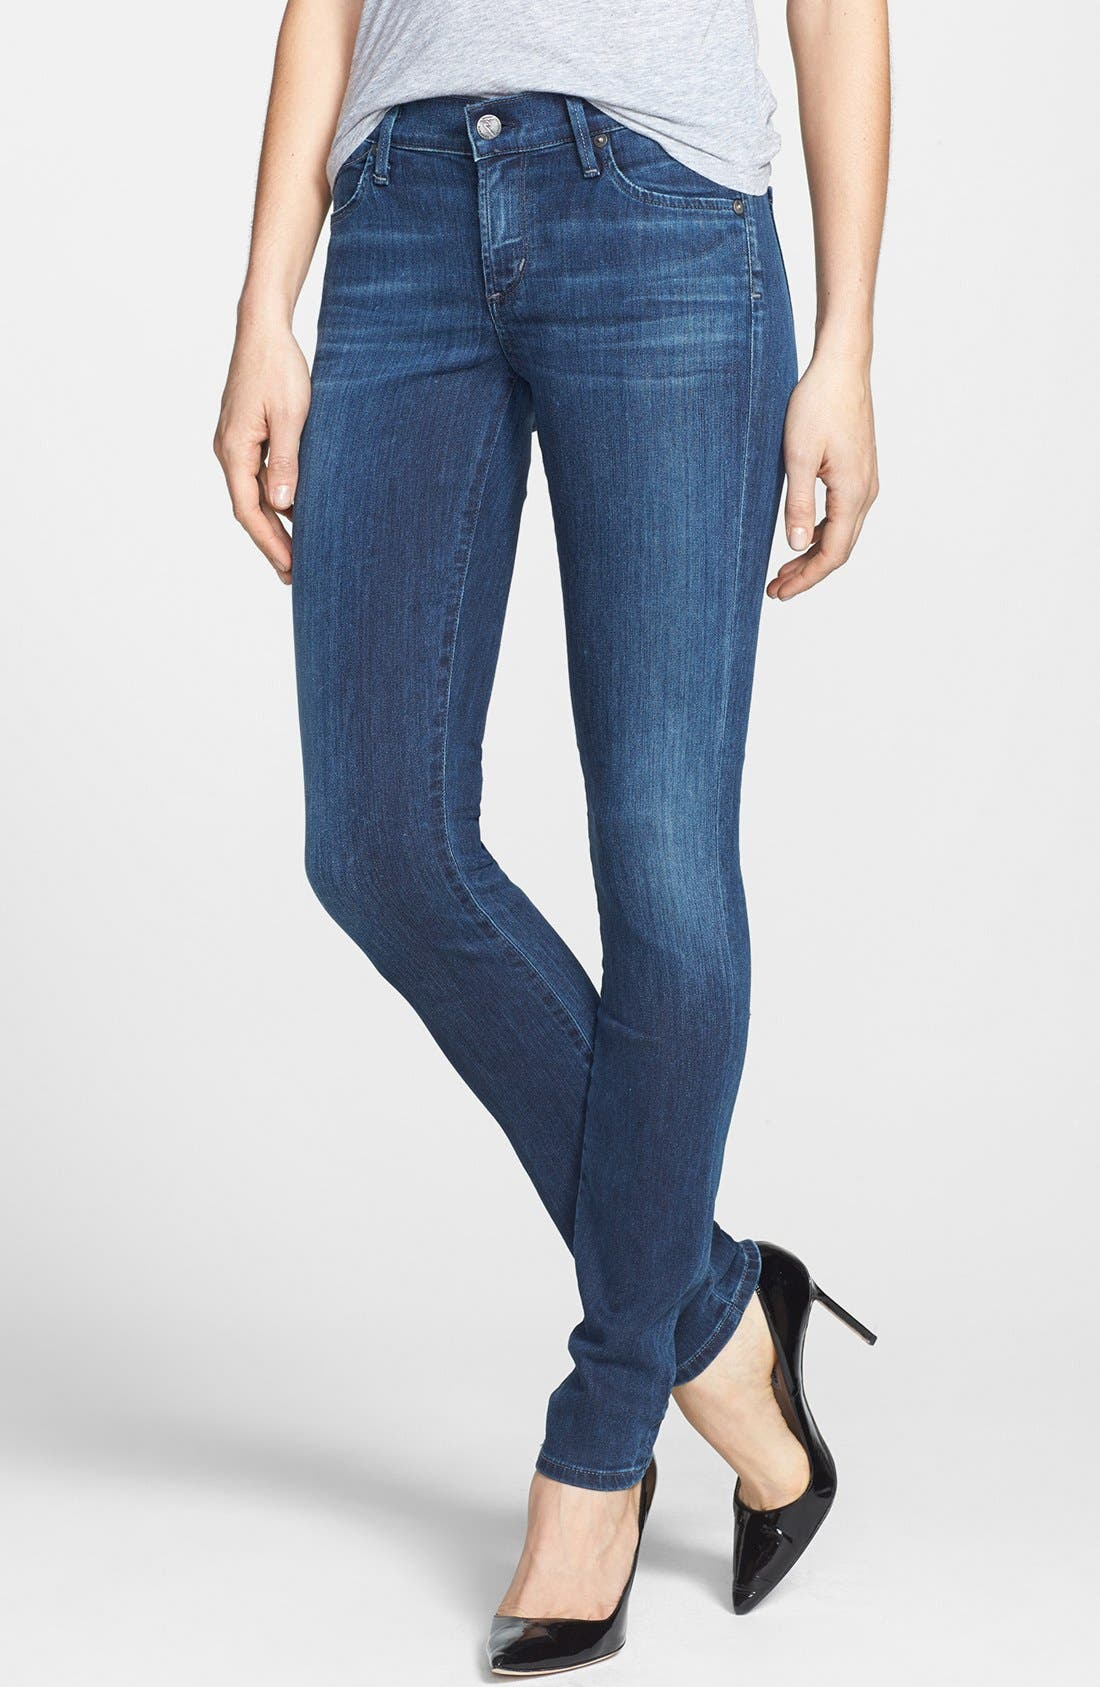 Alternate Image 1 Selected - Citizens of Humanity Skinny Stretch Jeans (Secret)